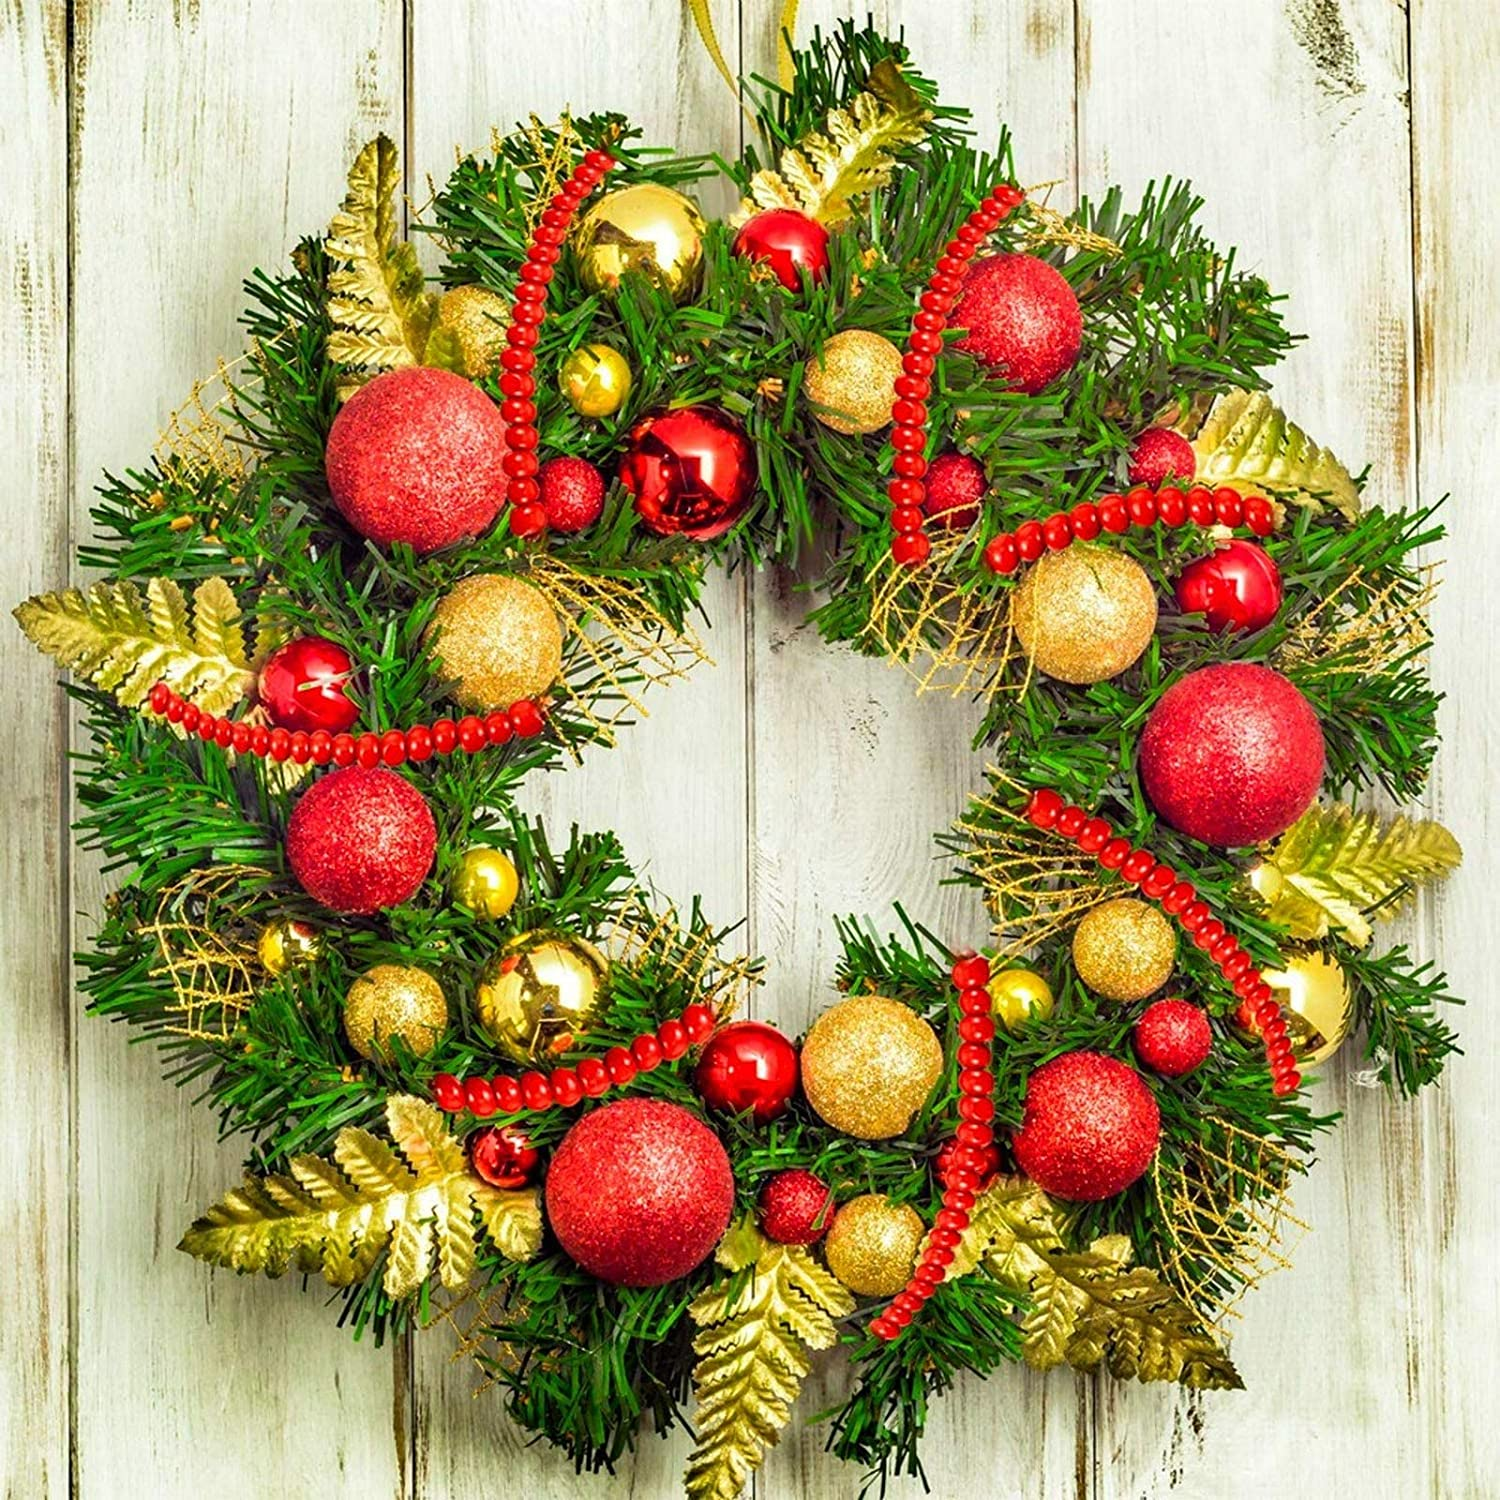 Christmas Wooden Bead Garland Bright Red Wood Bead Garland Christmas Tree Holiday Decoration Bright Red,4.6 Feet